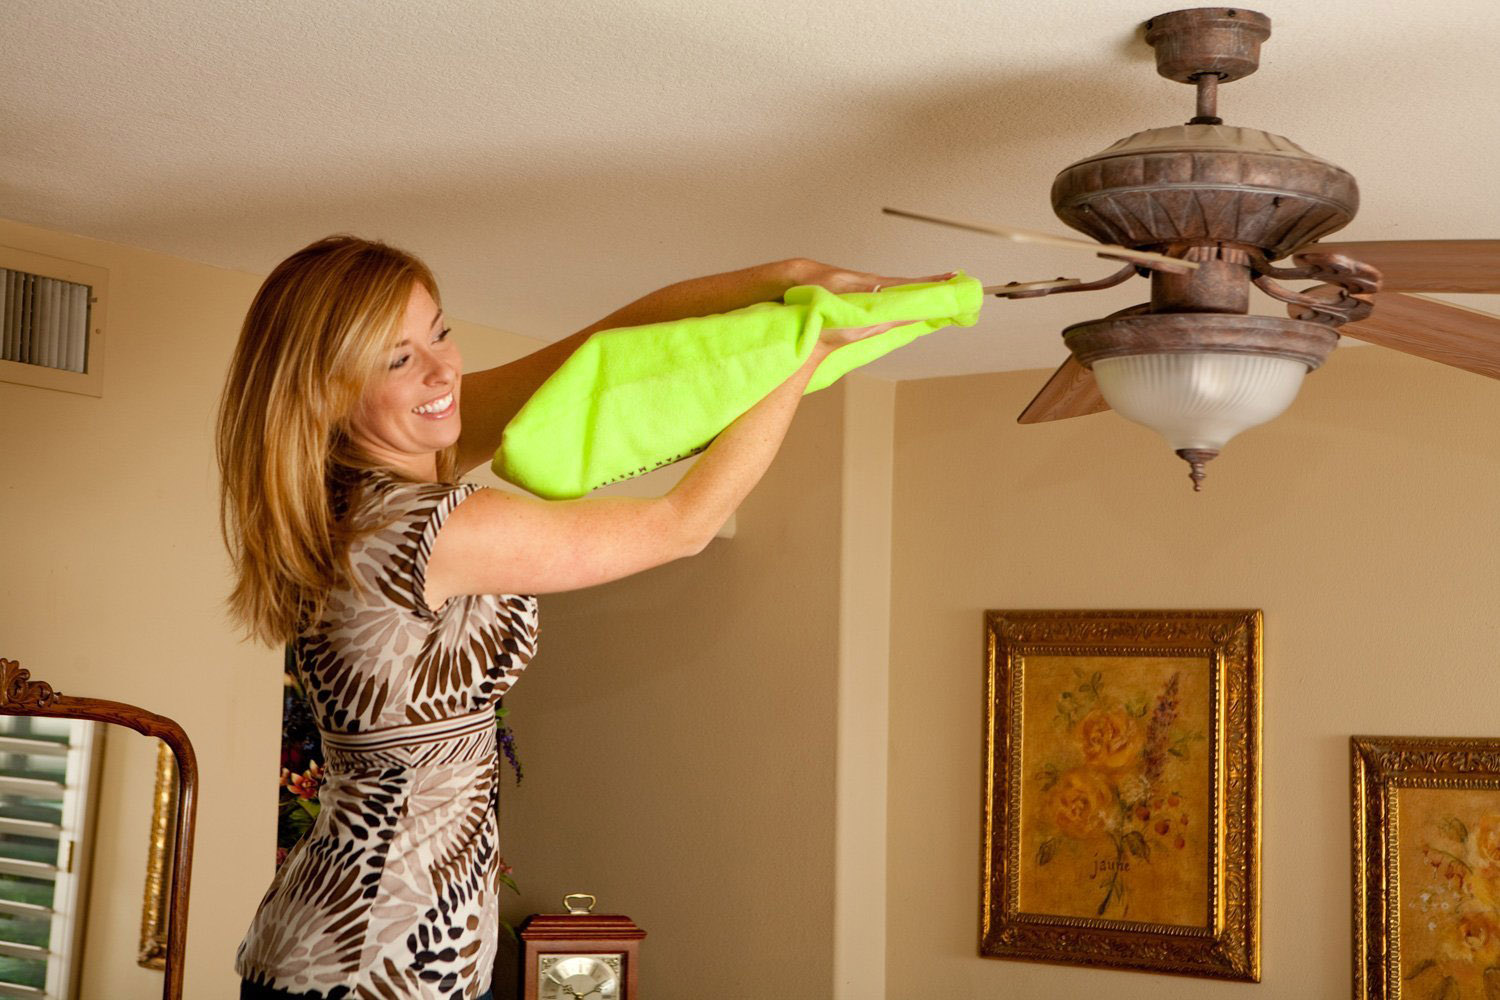 Ways to Clean a Dirty Ceiling Fan